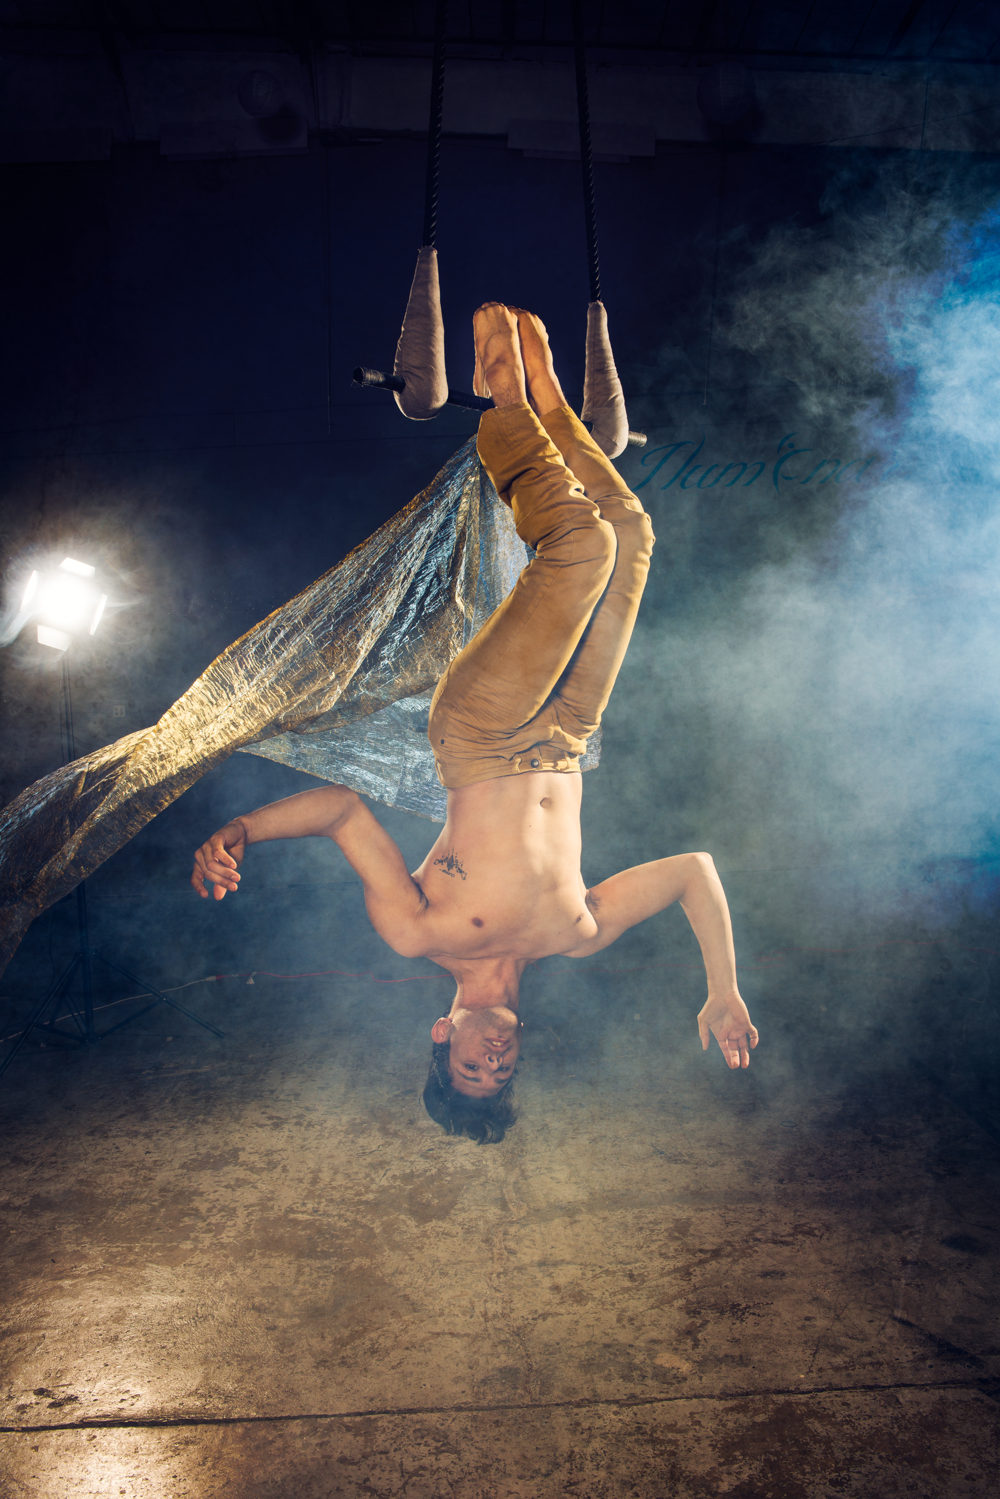 Daniel Nolasco:  Aerial & Aerial Partnering Instructor   Daniel Nolasco set himself to train in a variety of art forms until he found his calling in circus. He came into the artistry with Frequent Flyers Productions in Boulder, Colorado.  The exhilarating combination of dance, theater, physicality, and music made circus his addiction. Daniel furthered his knowledge and passion for circus when he moved to Vermont; where he graduated from the New England Center for Circus Arts Professional Programs with a focus in Static/Dance Trapeze, Straps, and Sling.   Read More